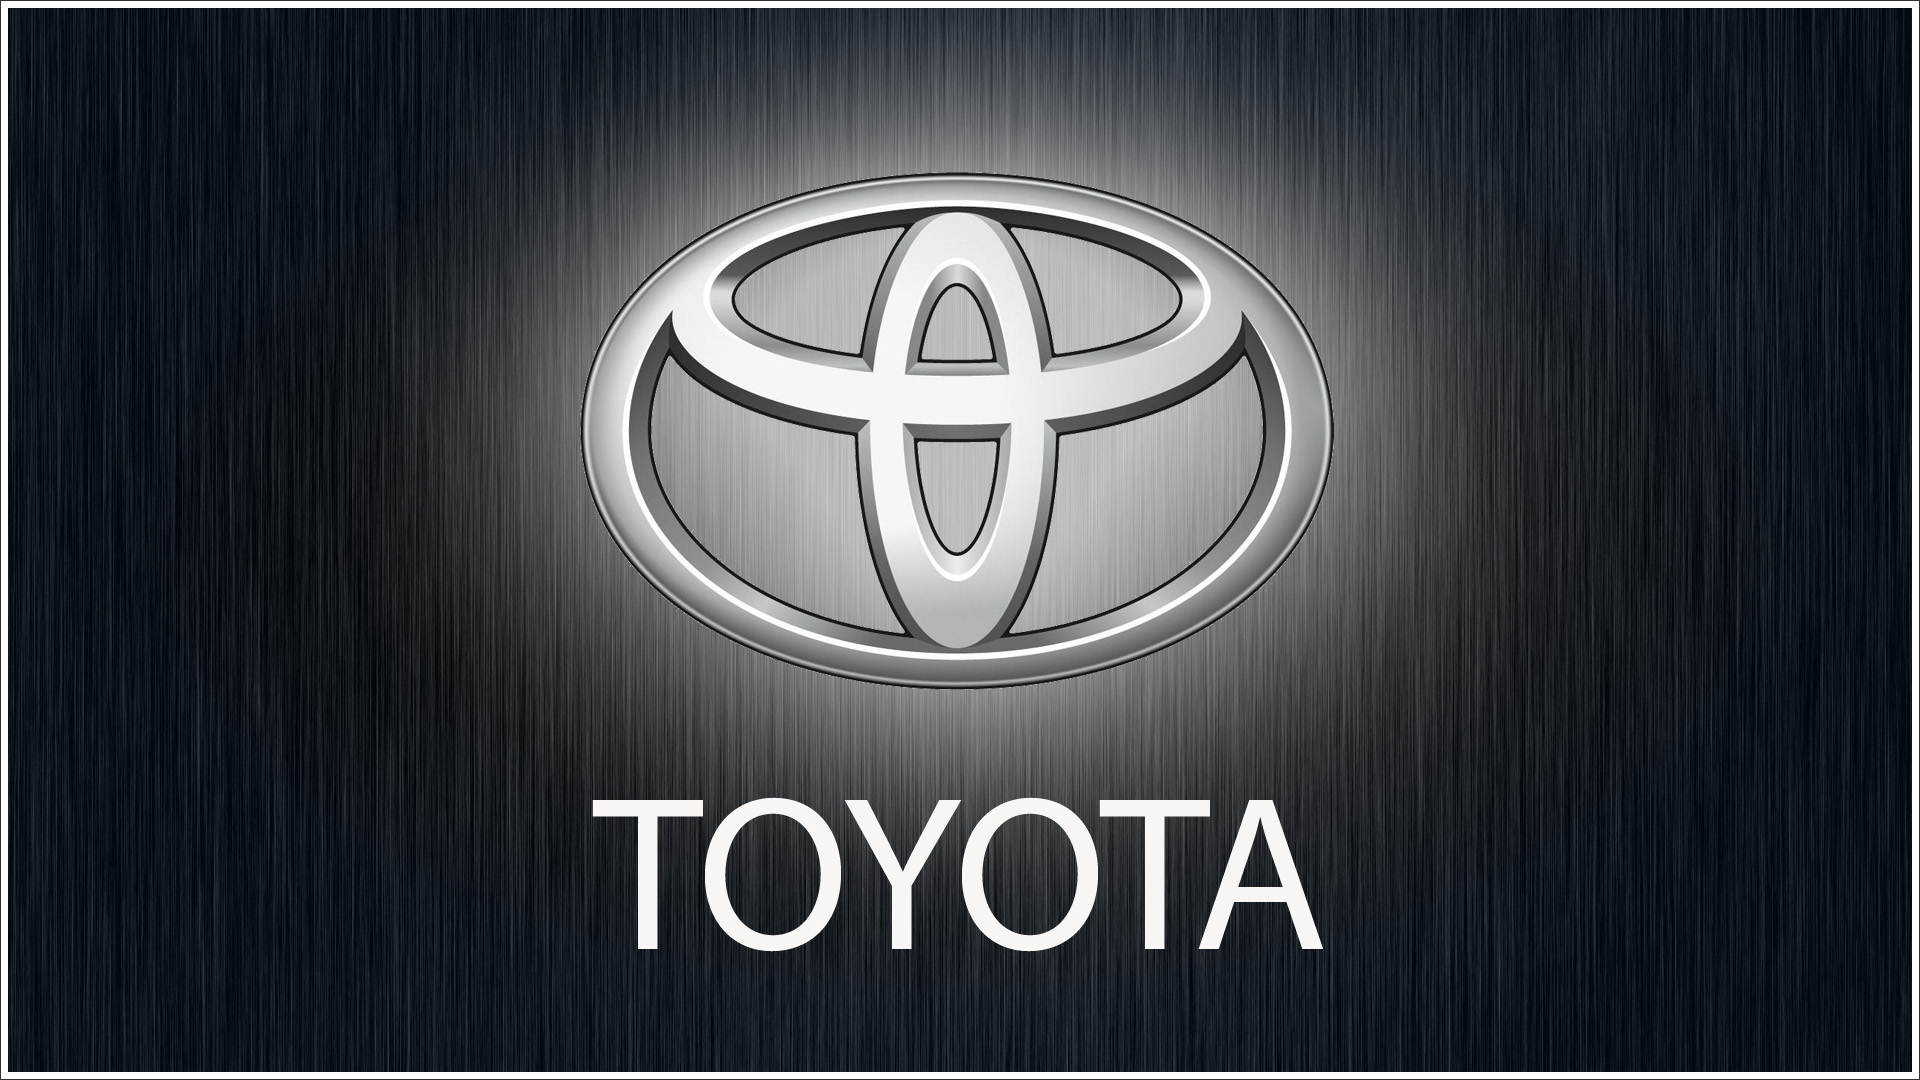 Toyota Logo Meaning and History, latest models | World ...